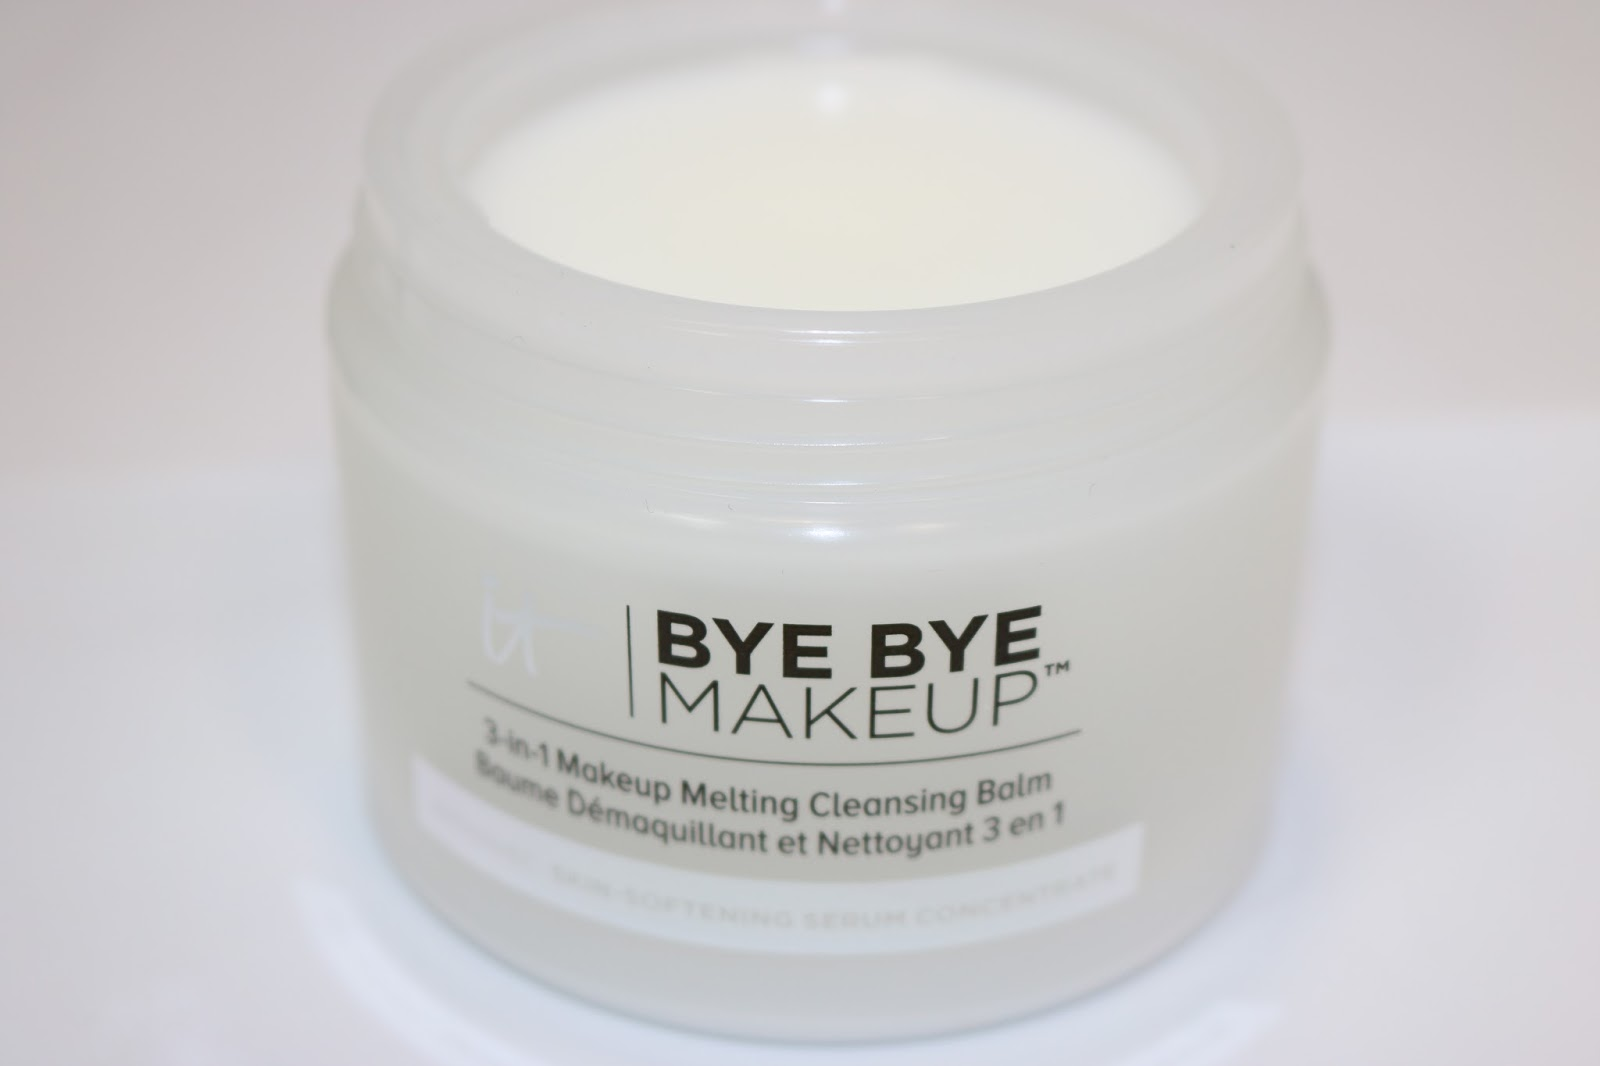 IT Cosmetics Bye Bye Makeup 3-in-1 Melting Cleansing Balm